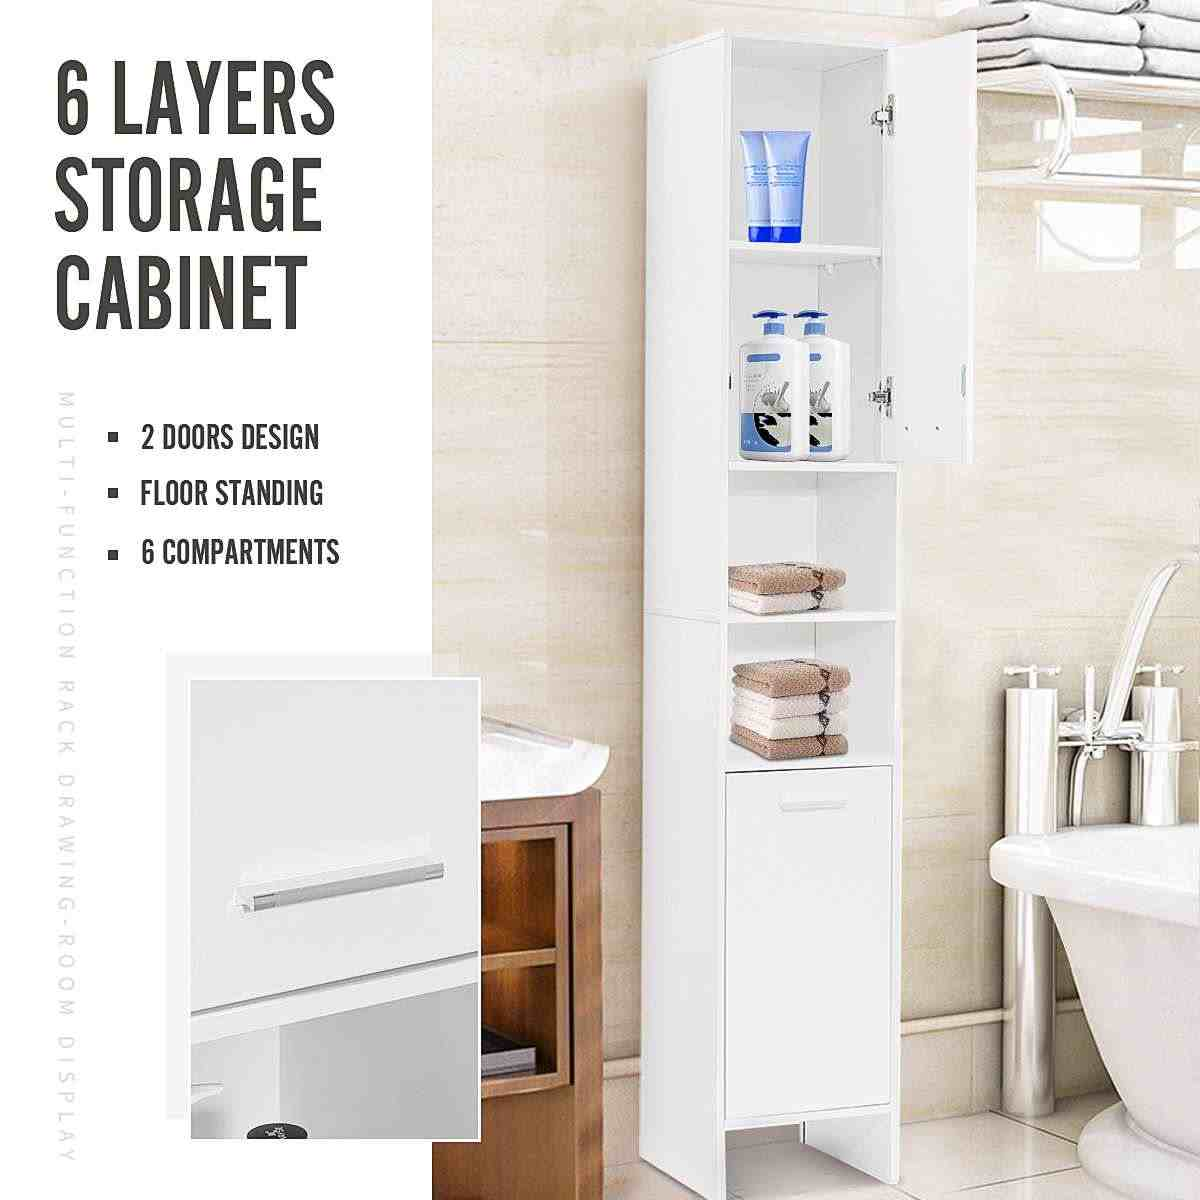 6 Layers Bathroom Cabinet 170x30x30cm